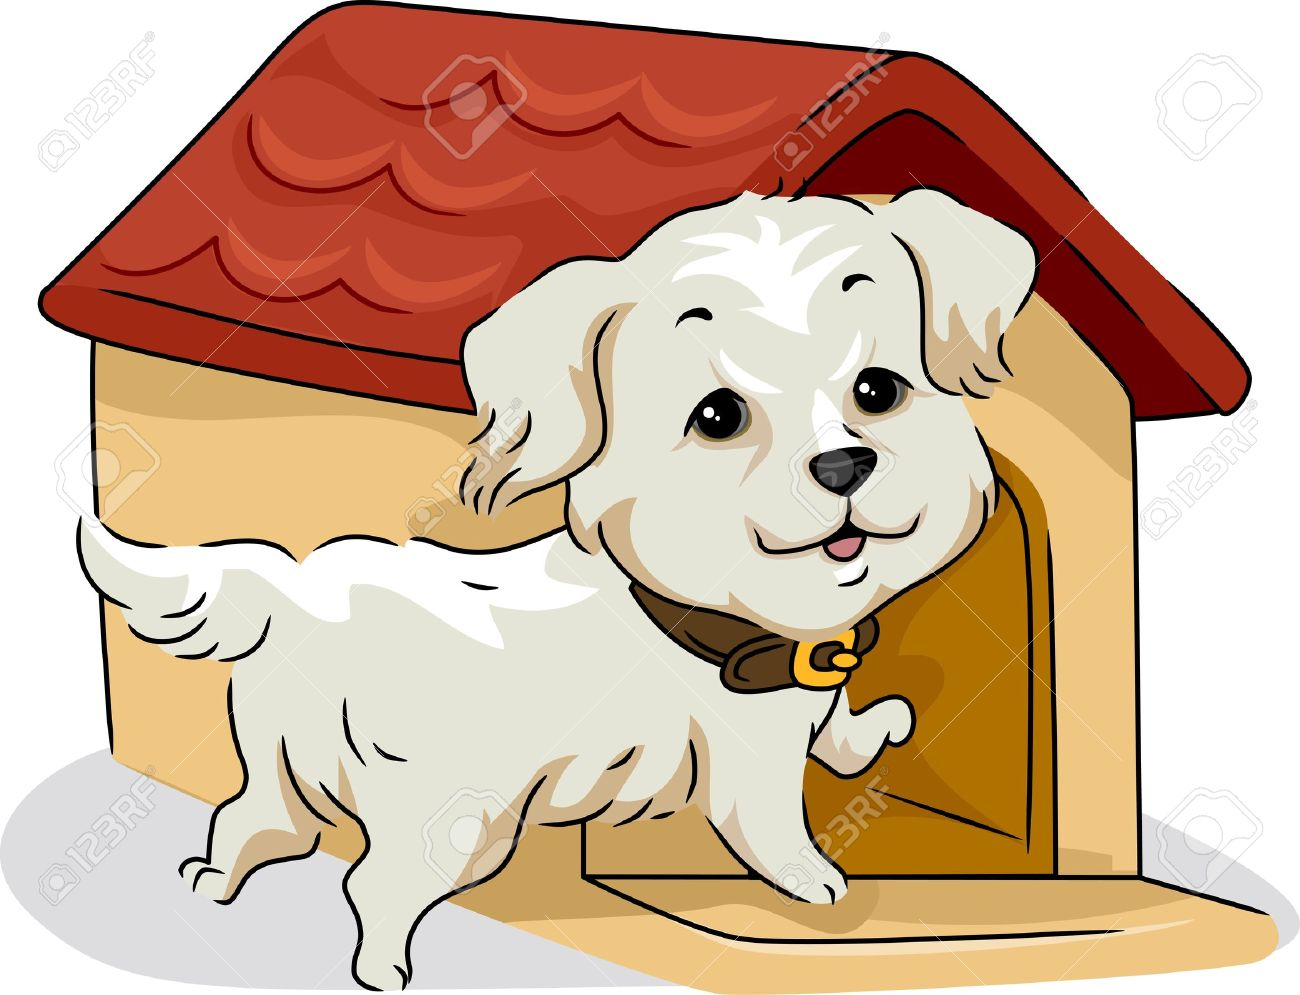 Illustration clipart home Collection Golden Retriever clipart Of